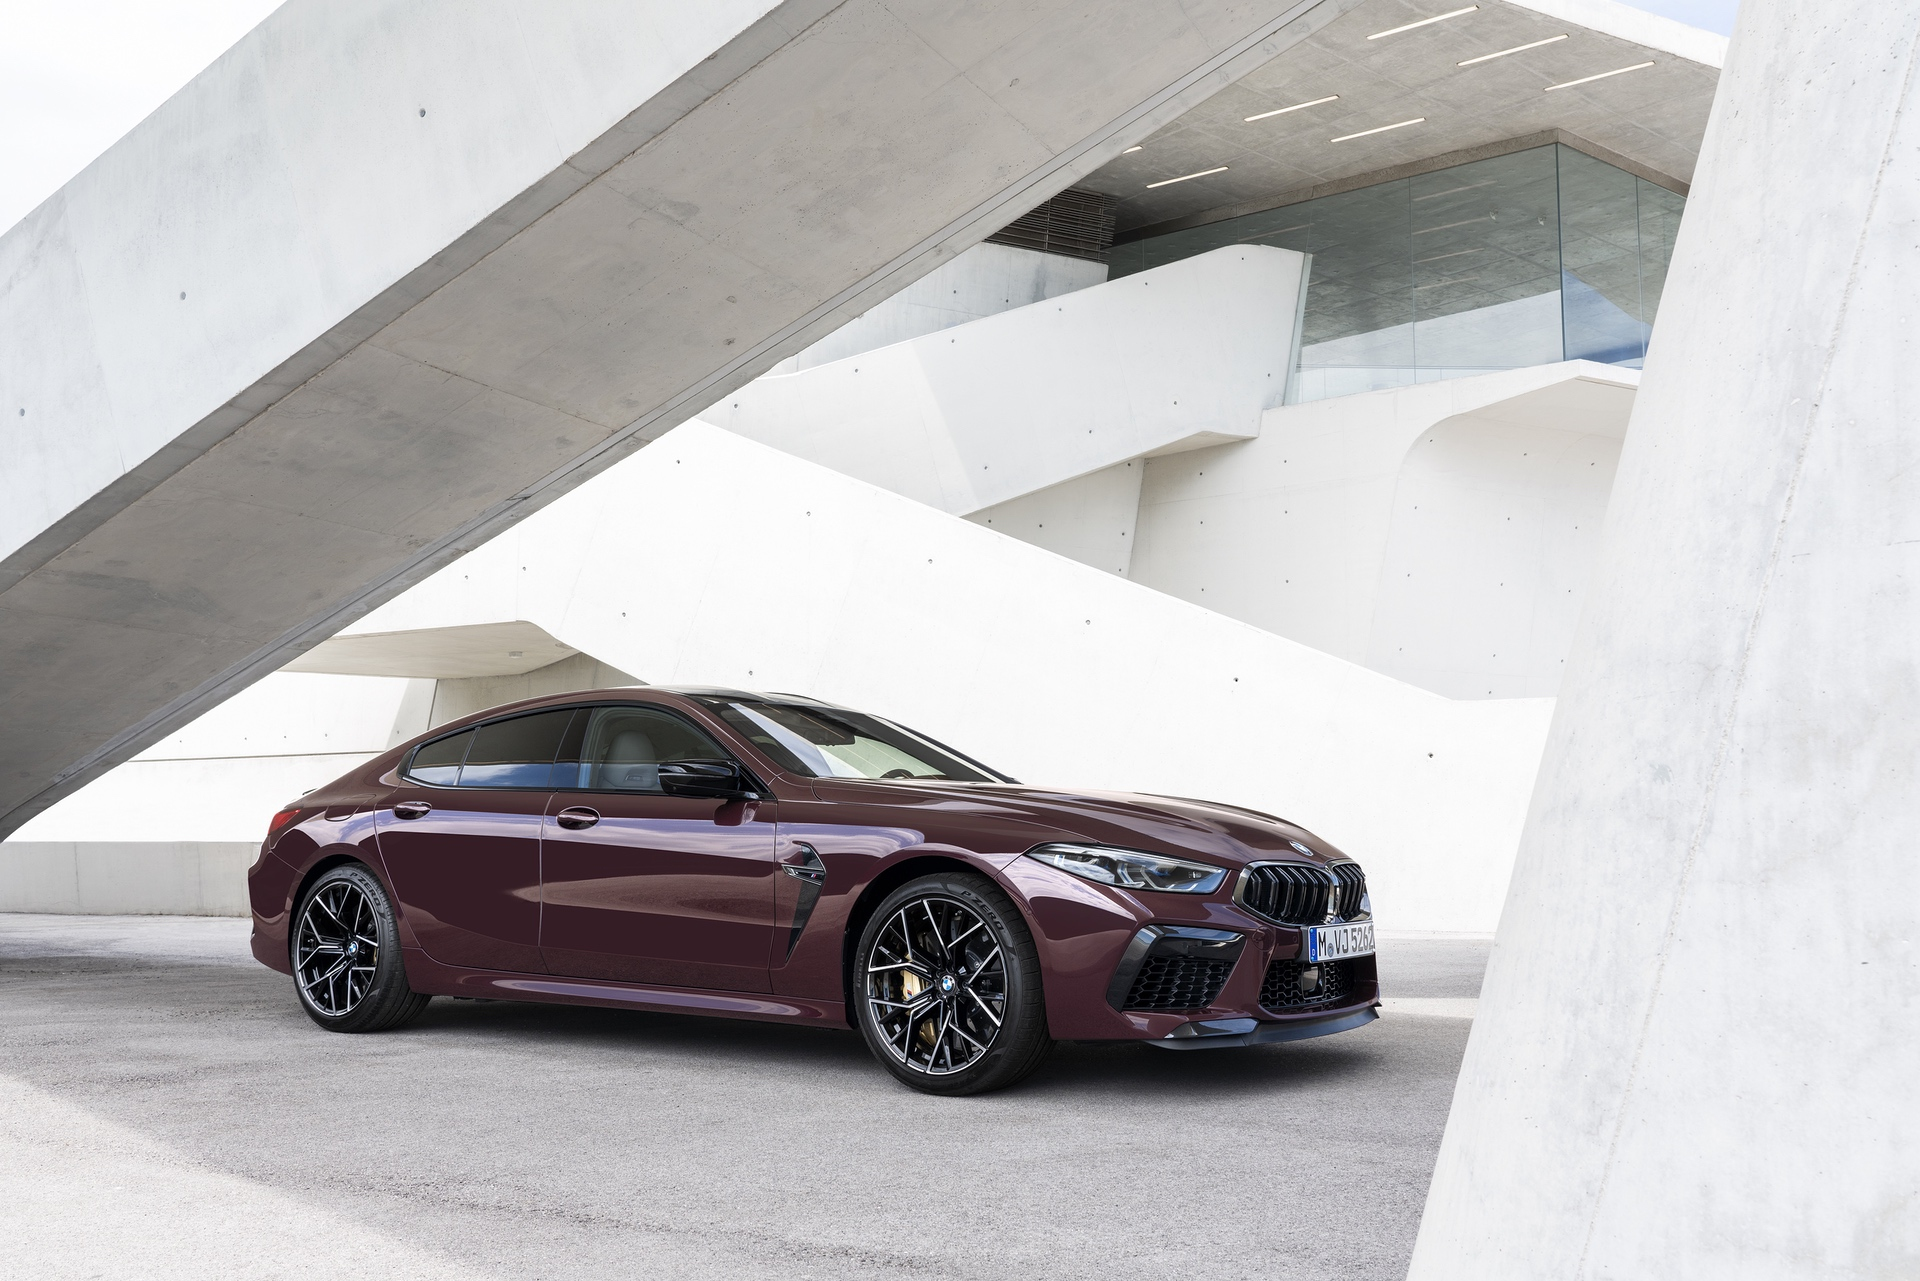 BMW M8 Gran Coupe exterior images 13